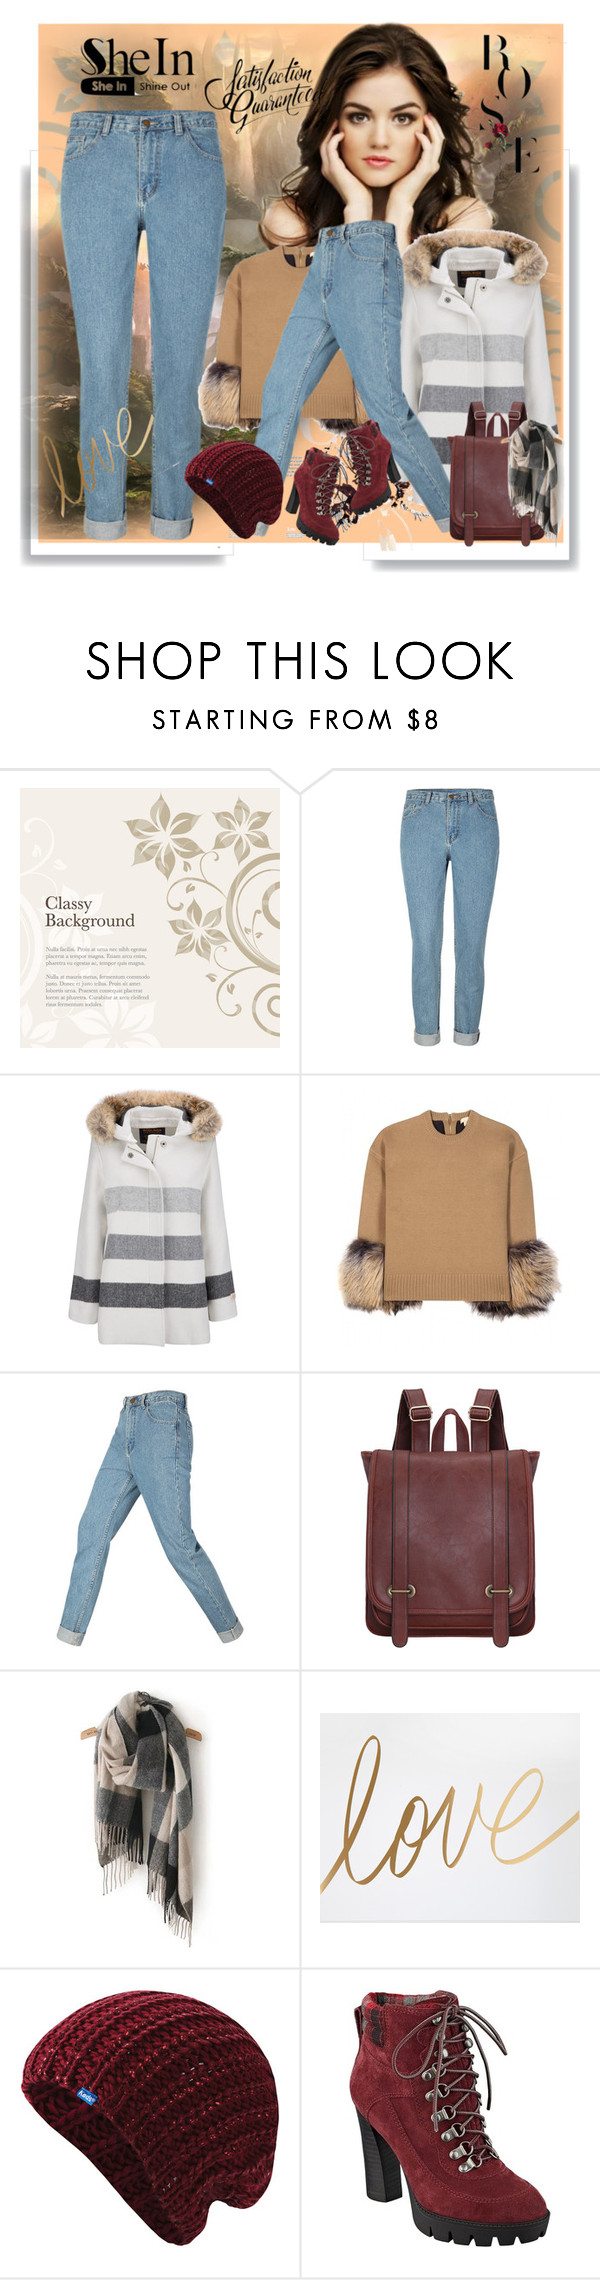 """Shein Denim Pants"" by lila2510 ❤ liked on Polyvore featuring Woolrich, Michael Kors, Keds and Nine West"